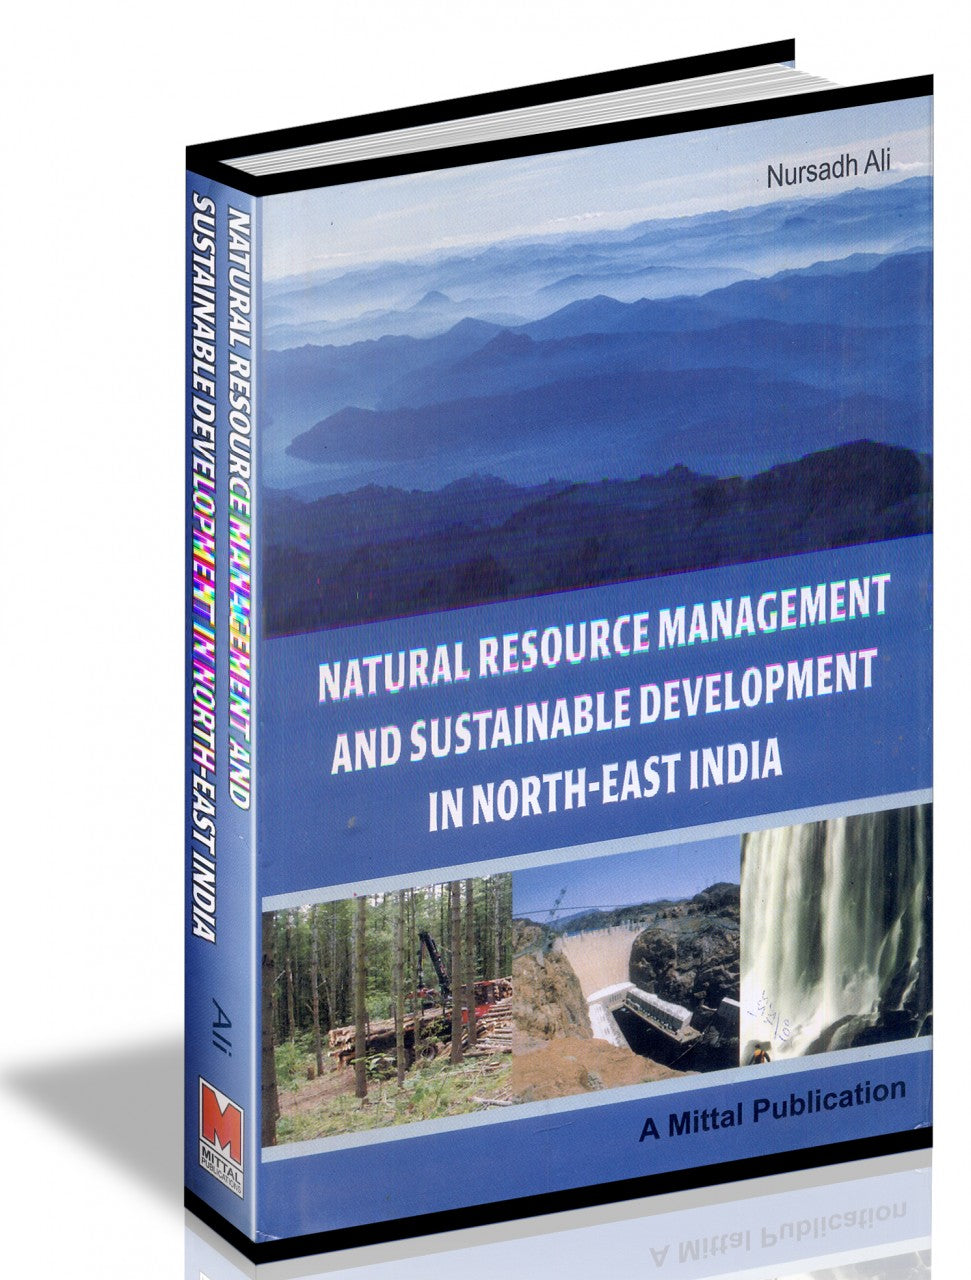 Natural Resource Management and Sustainable Development in North-East India